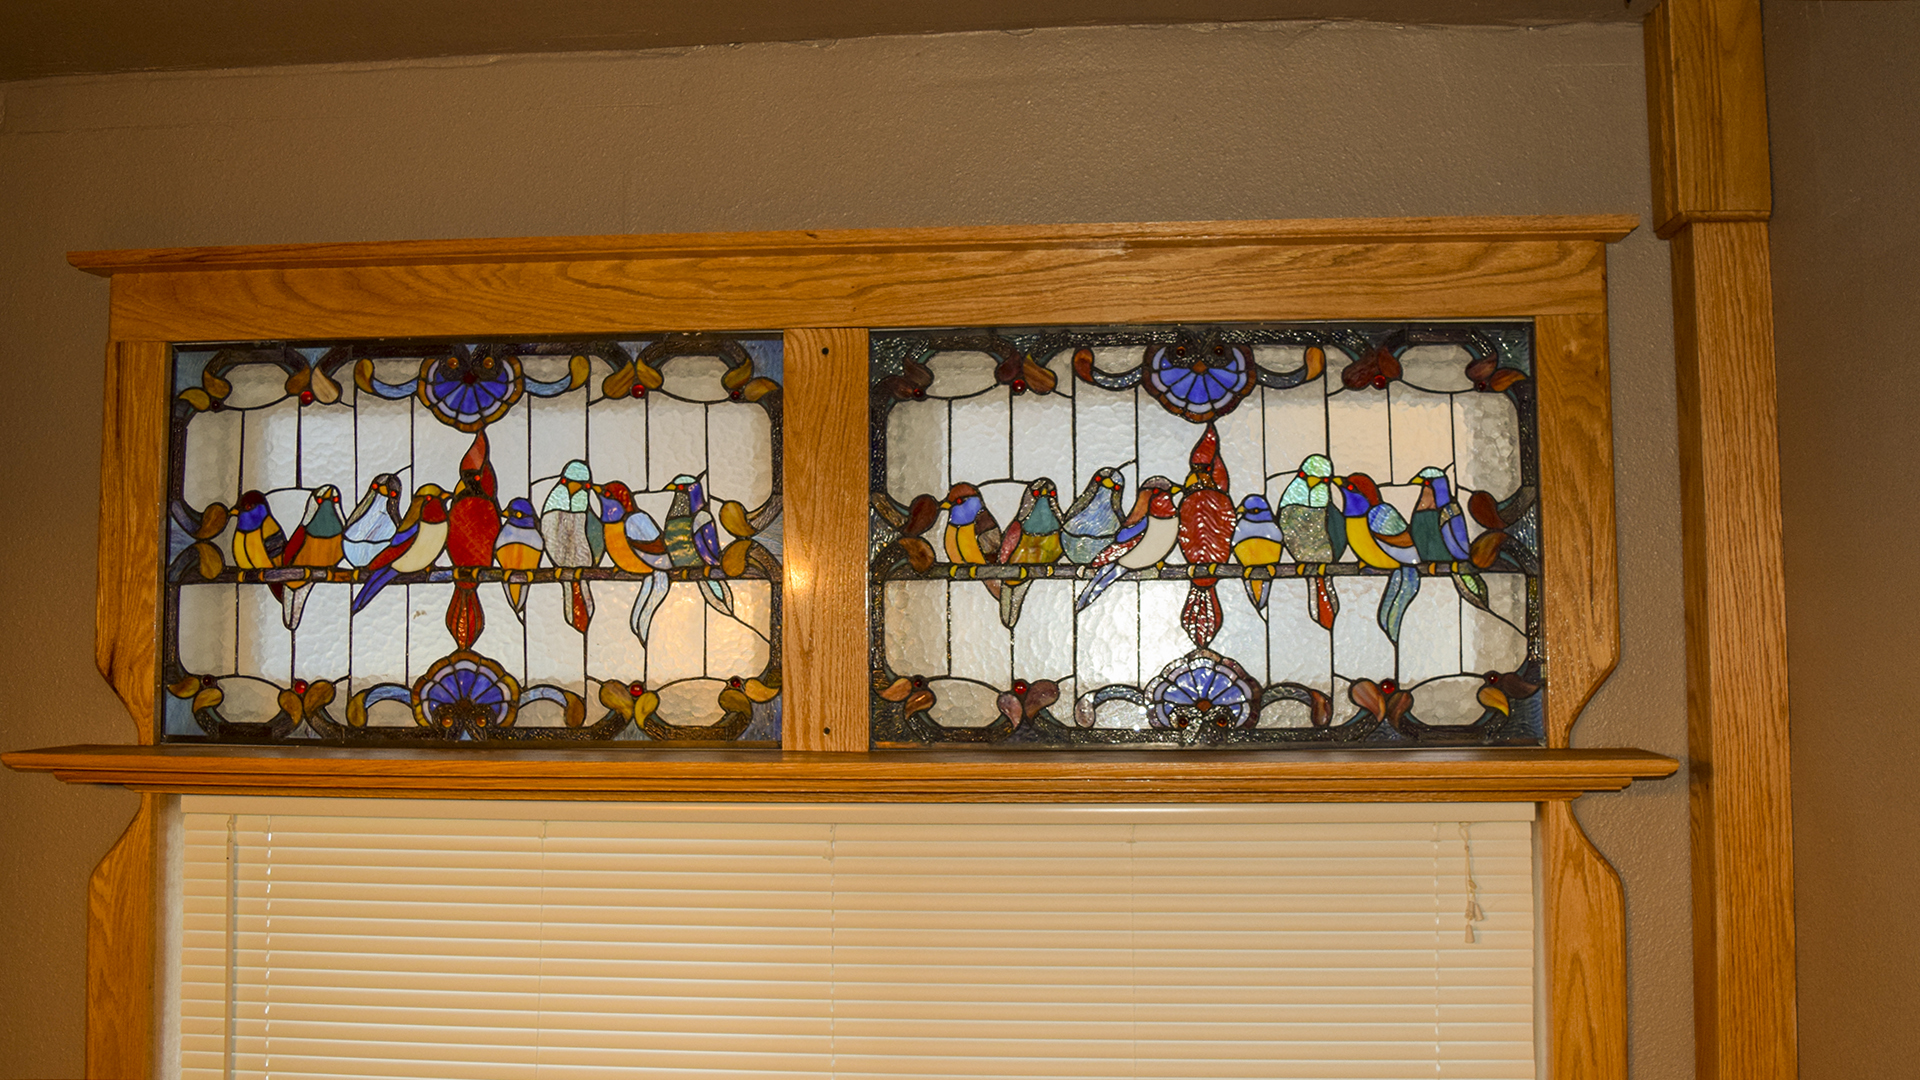 Framing the Stained Glass Window with custom made Oak Windowsills.